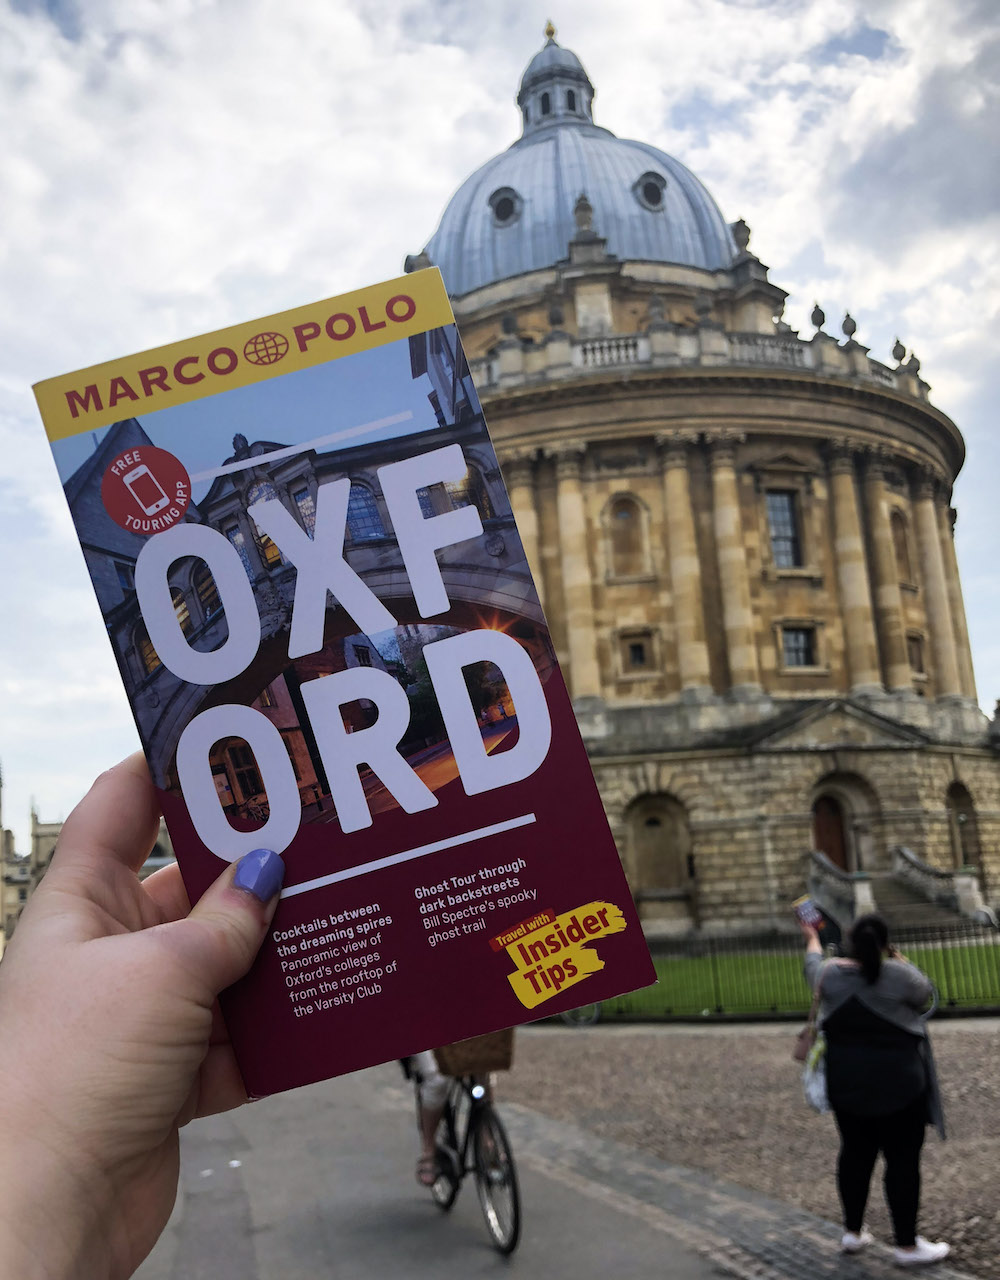 Oxford Day Trip, Marco Polo Guide